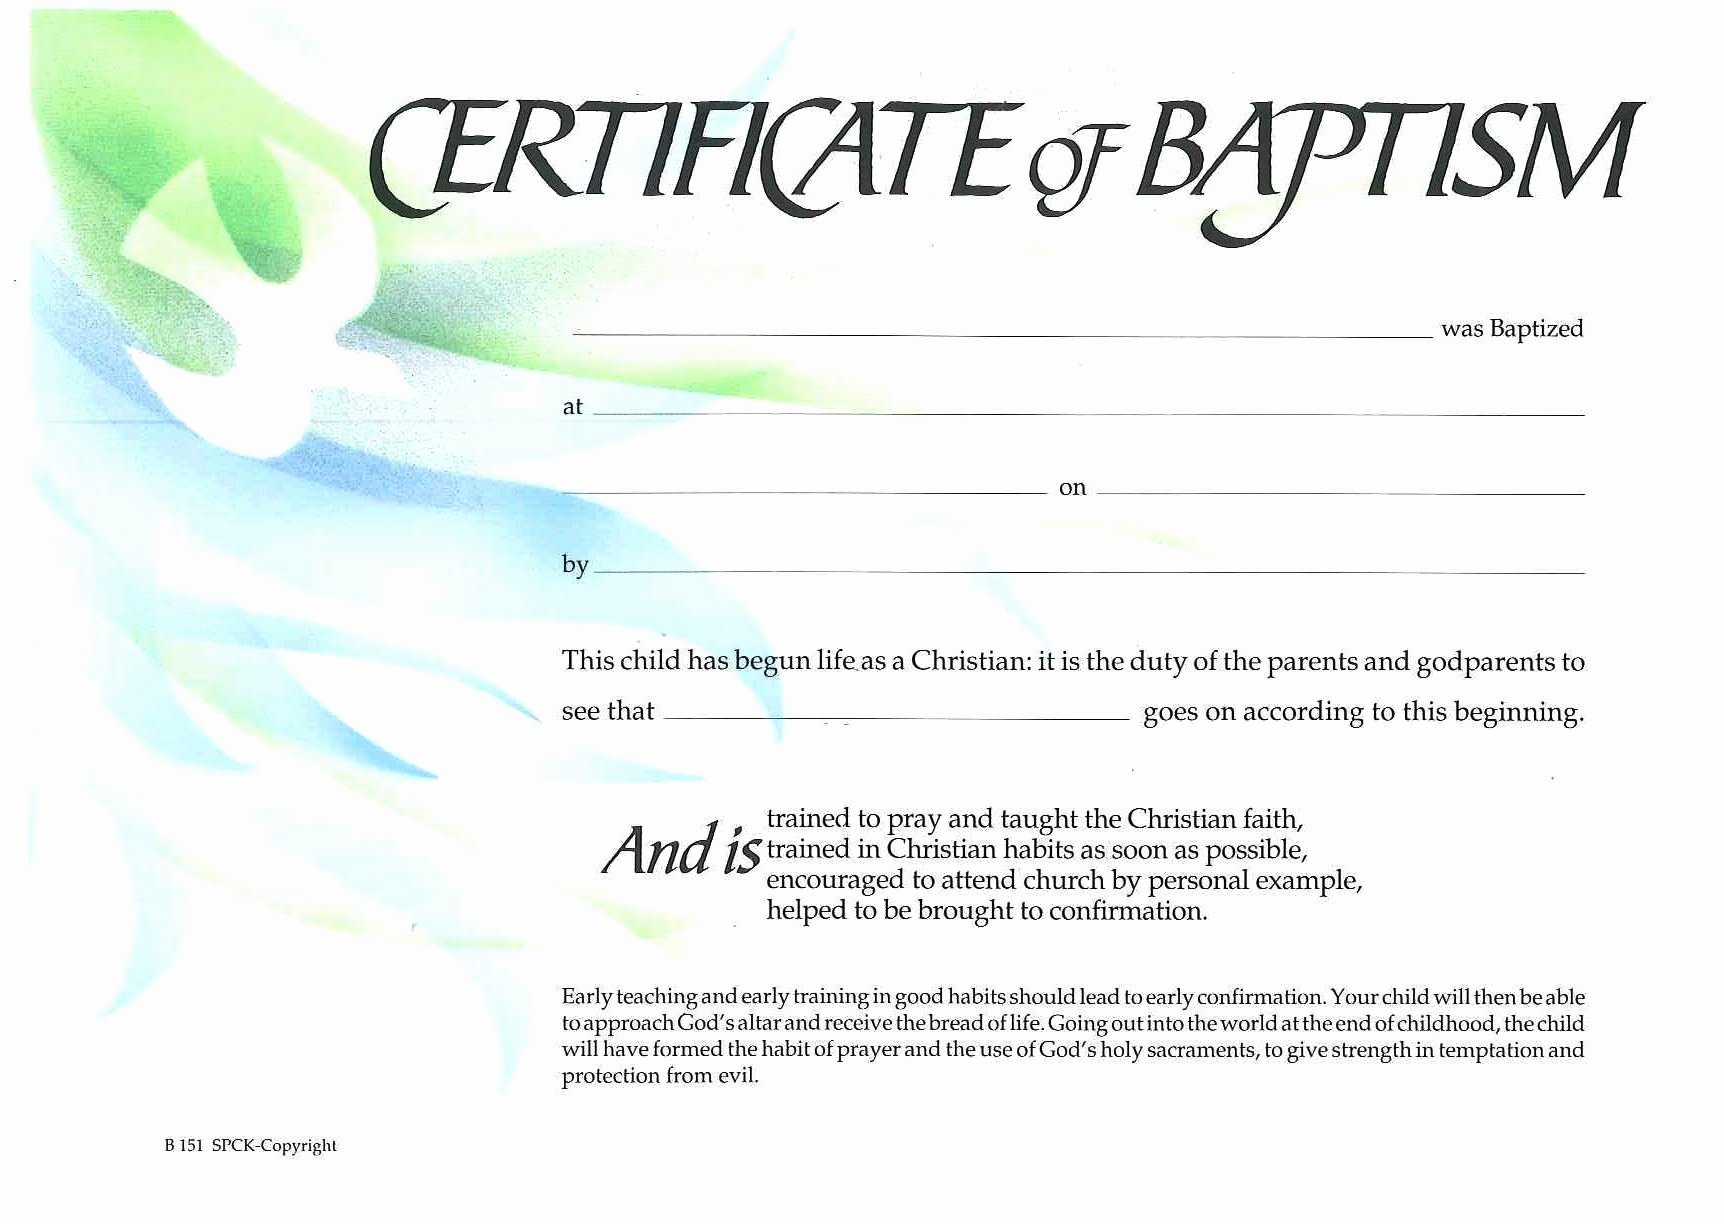 Roman Catholic Baptism Certificate Template New Baptism Certificate Xp4eamuz Sunday School